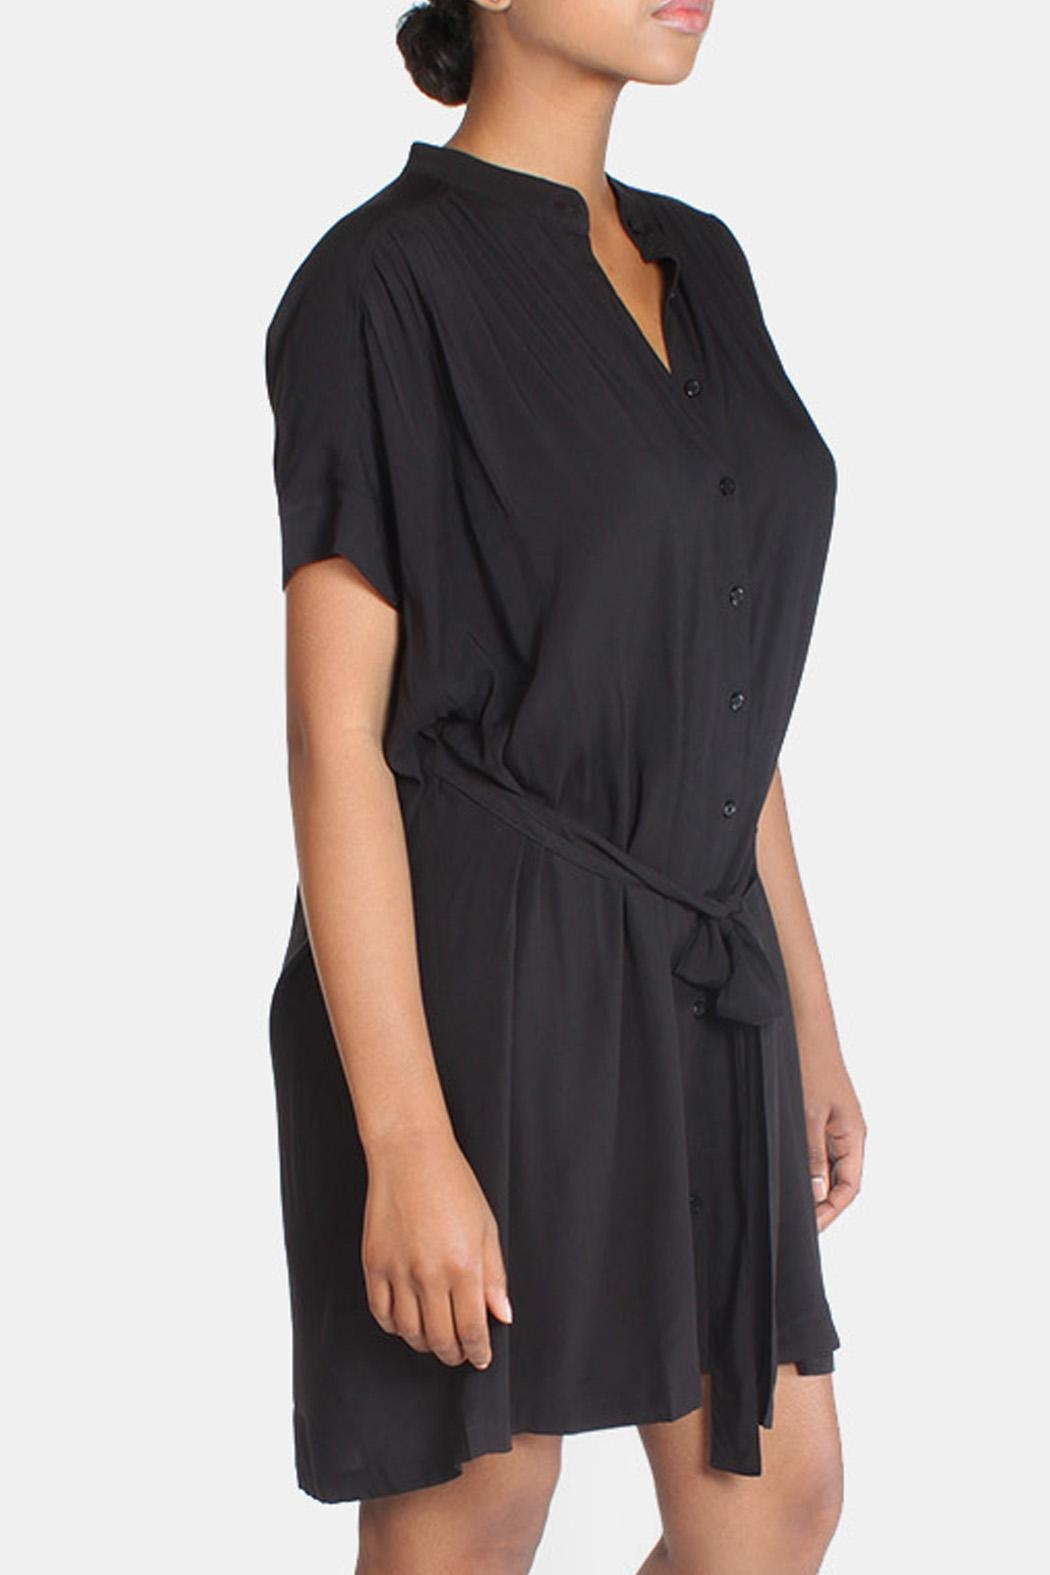 rokoko Black Slouchy Chic Dress - Side Cropped Image